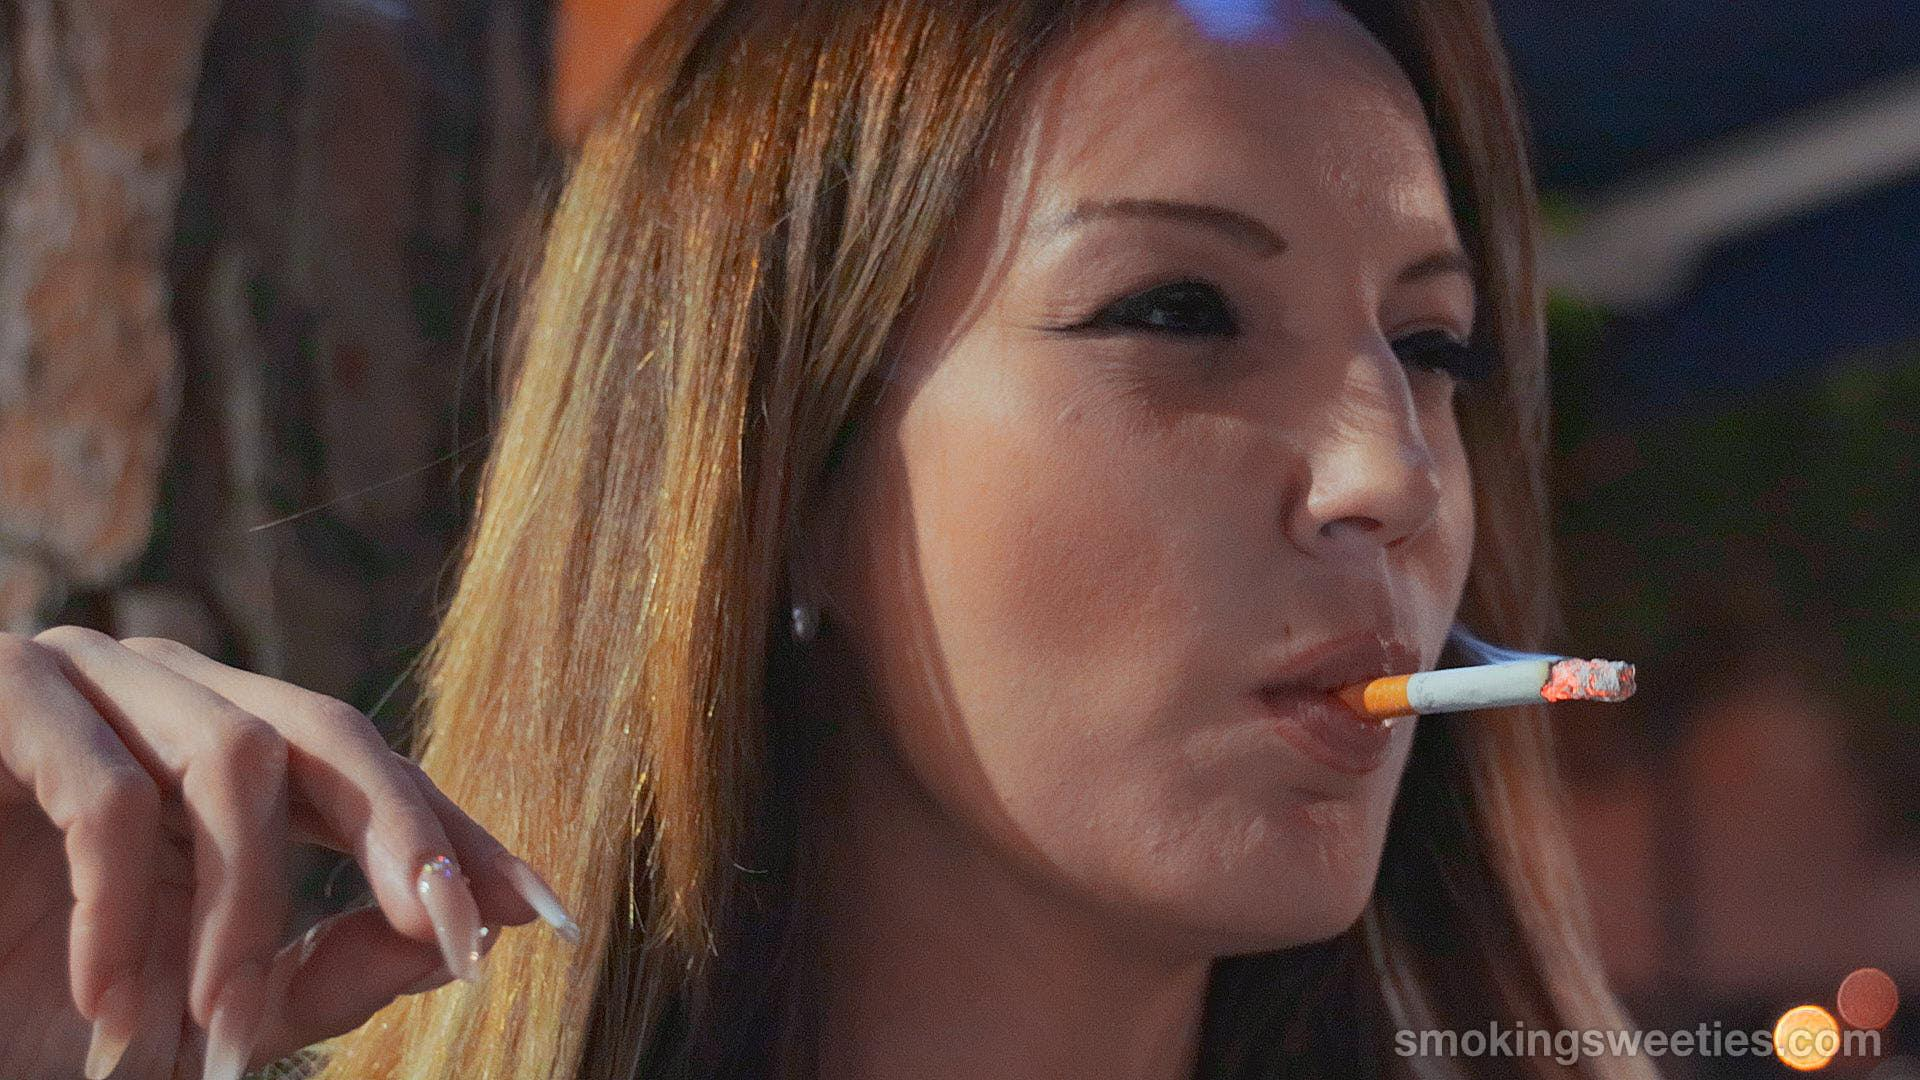 Becky: Heavy Smoker for 23 years